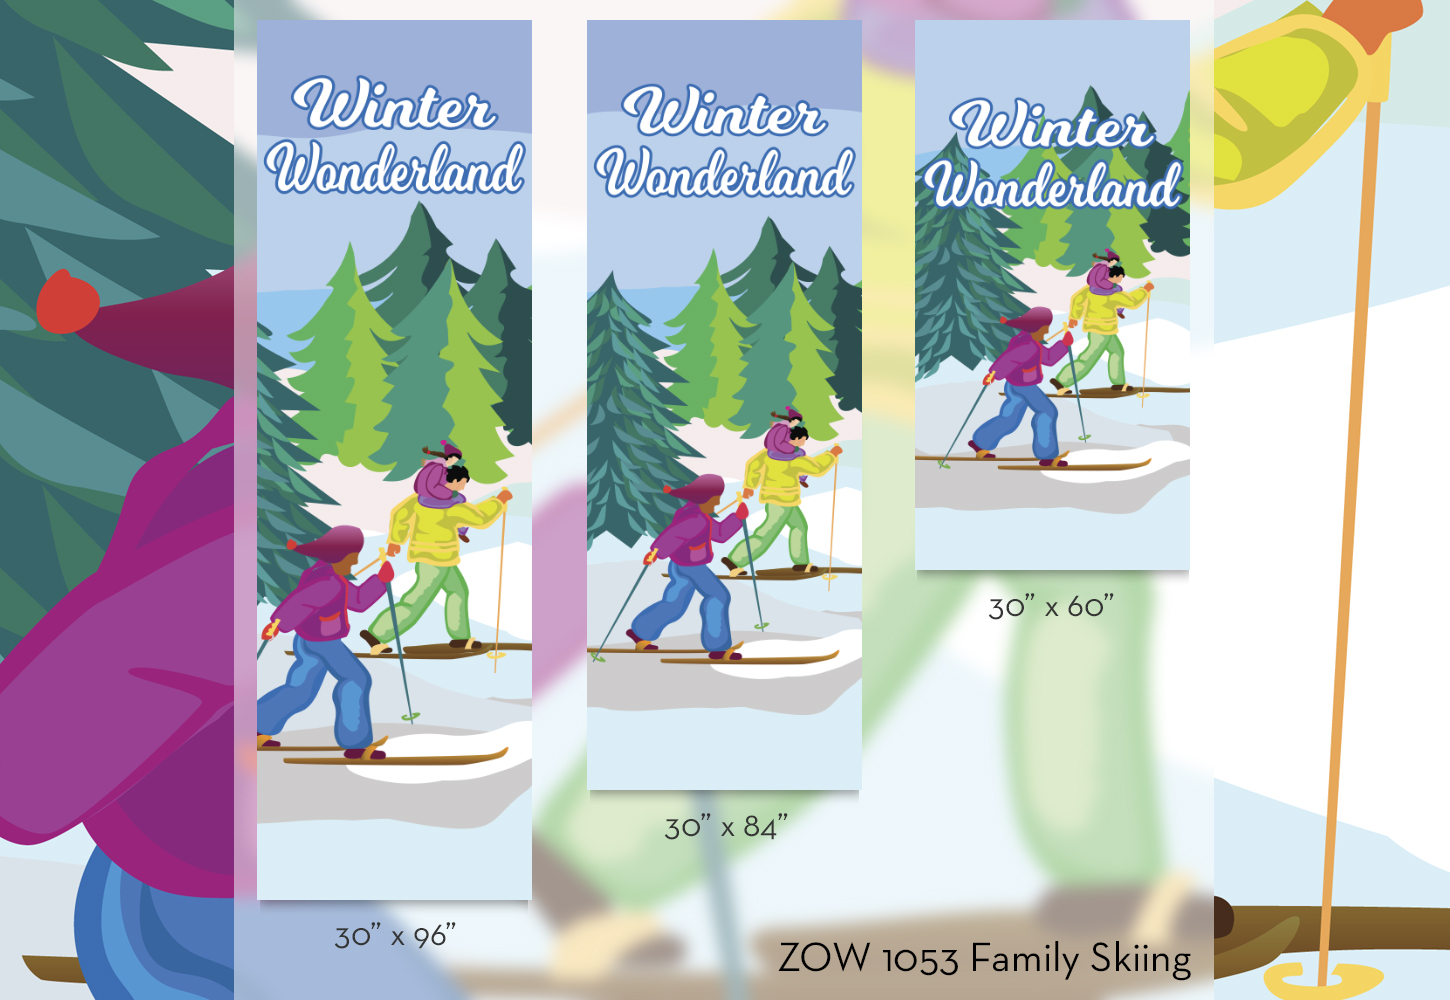 ZOW 1053 Family Skiing